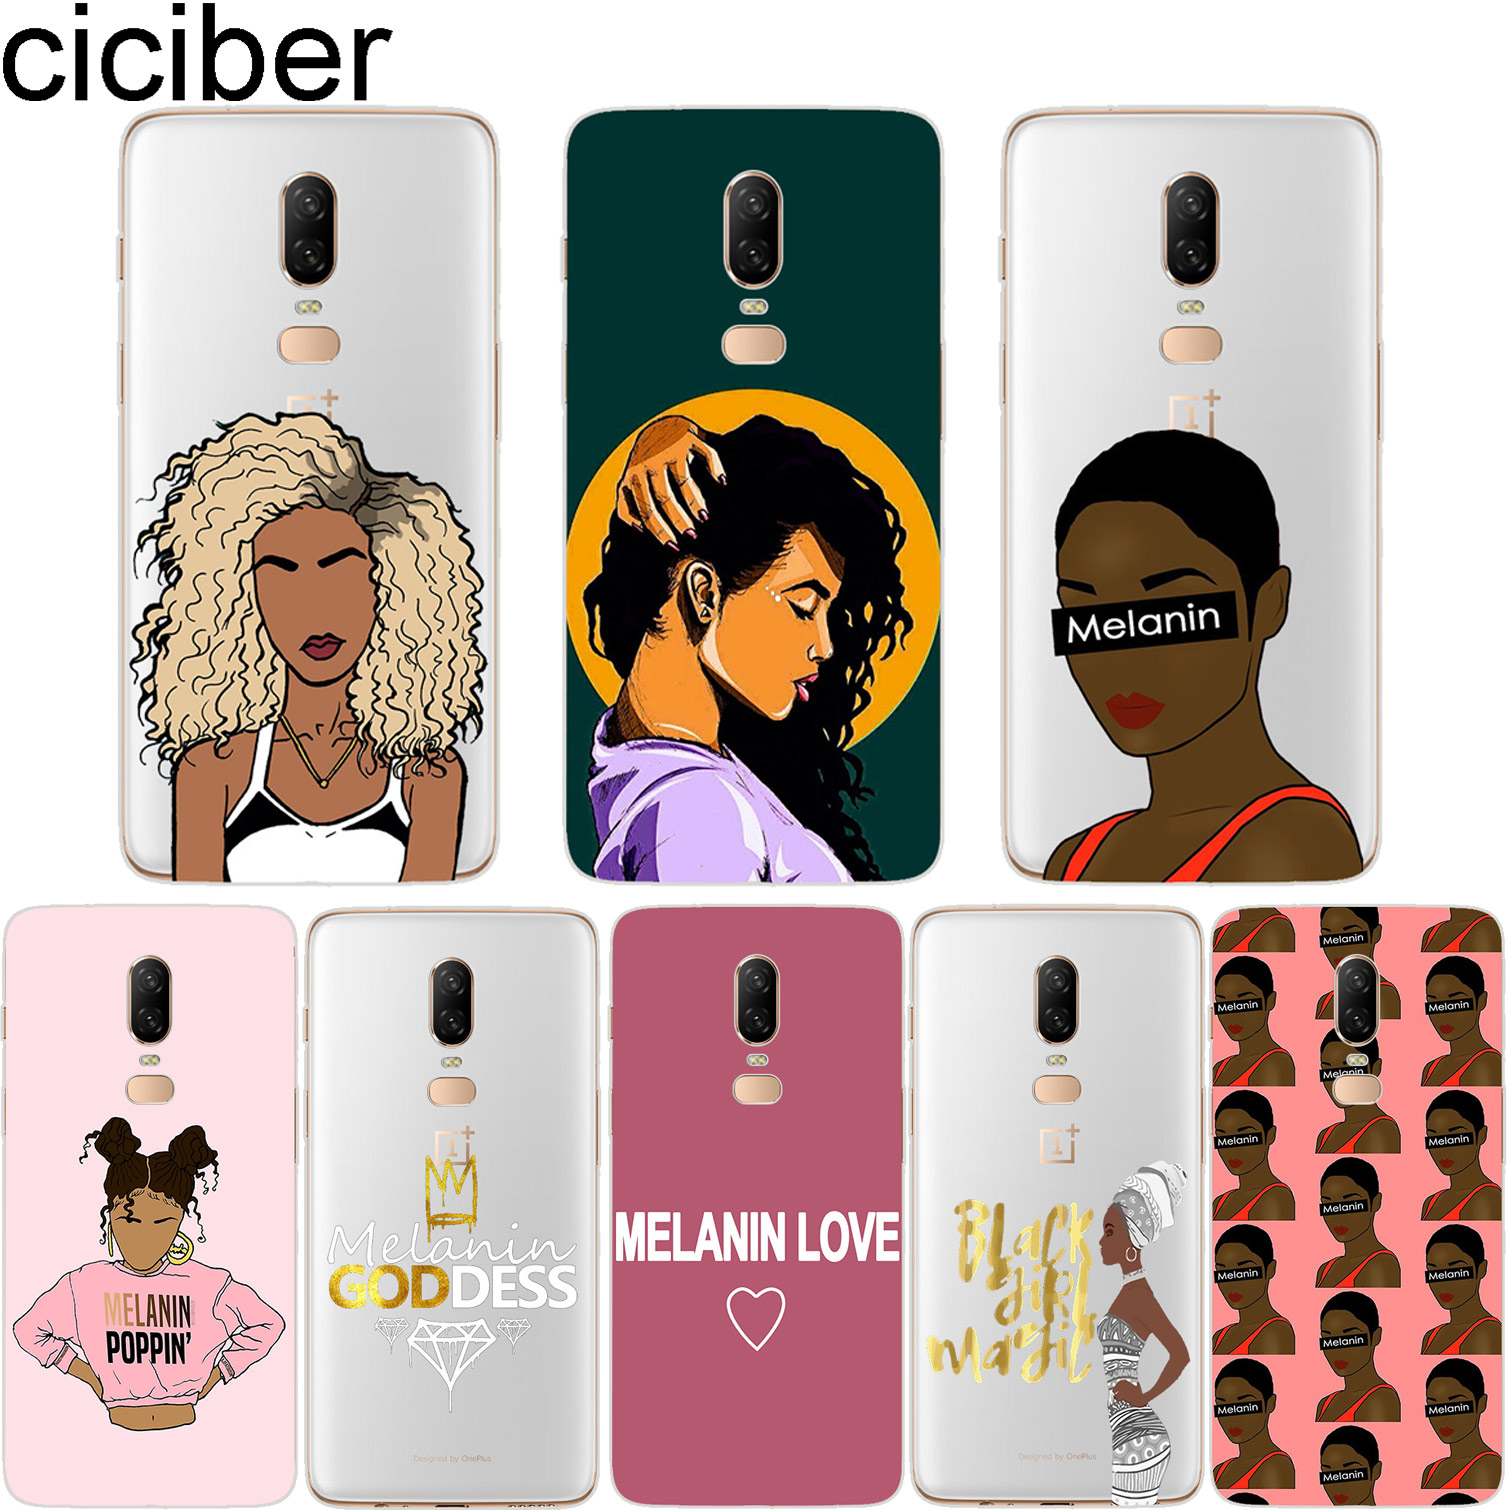 Cellphones & Telecommunications Generous Ciciber 2bunz Melanin Poppin Aba Phone Case For Oneplus 6 5 T Soft Tpu Back Cover Clear For 1 6 1+5 T Fundas Afro Black Girl